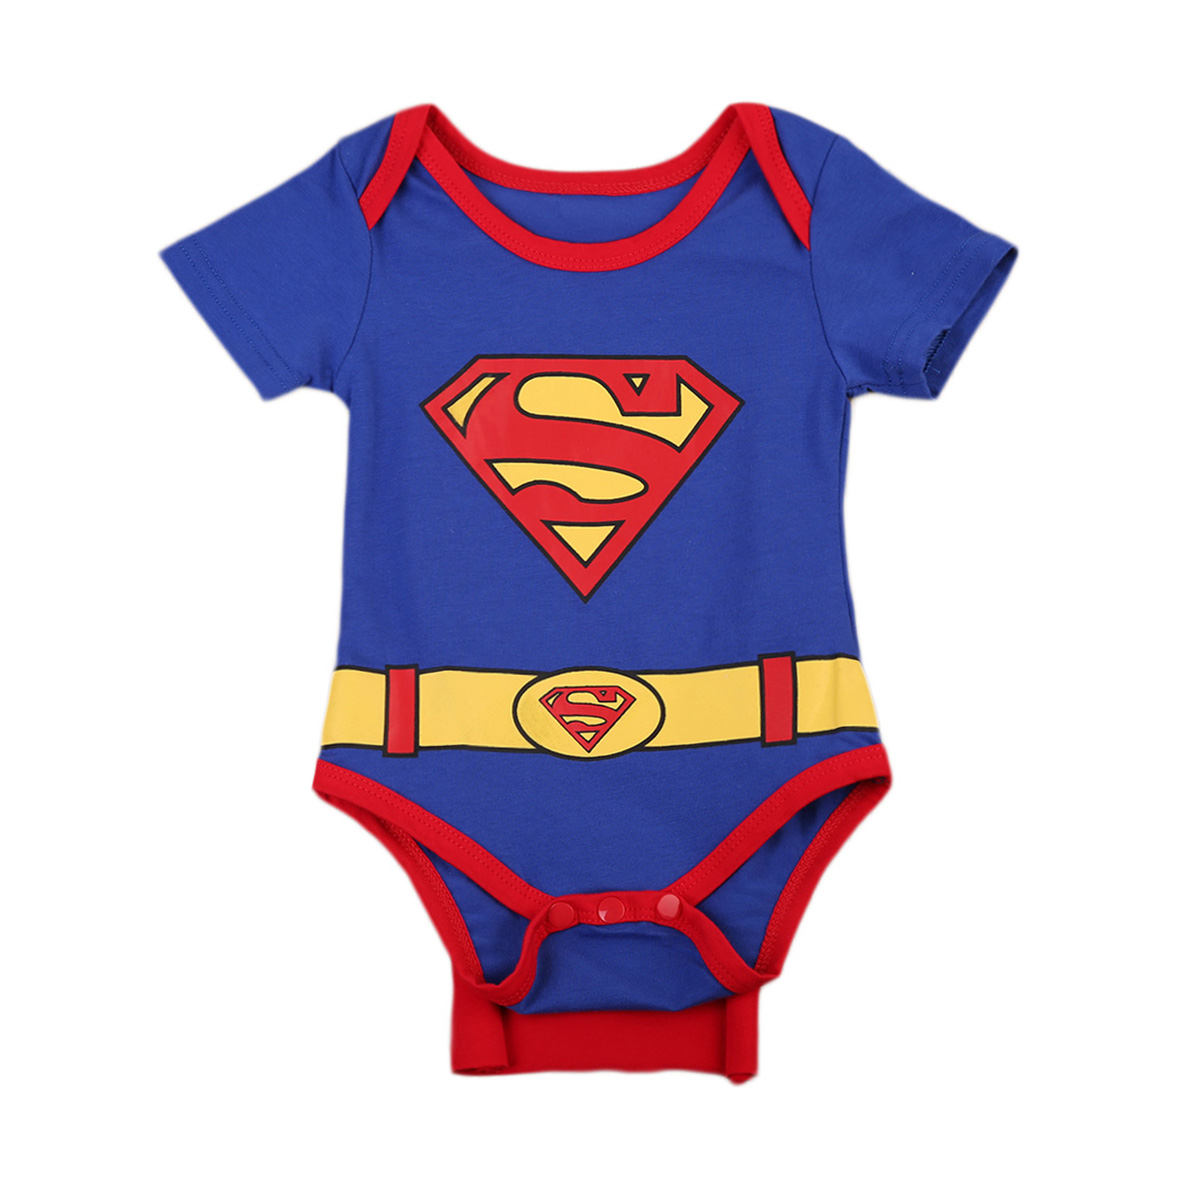 Infant Baby Superman Clothes Infant Boys Romper Jumpsuit Summer Kids Clothes Outfits стоимость